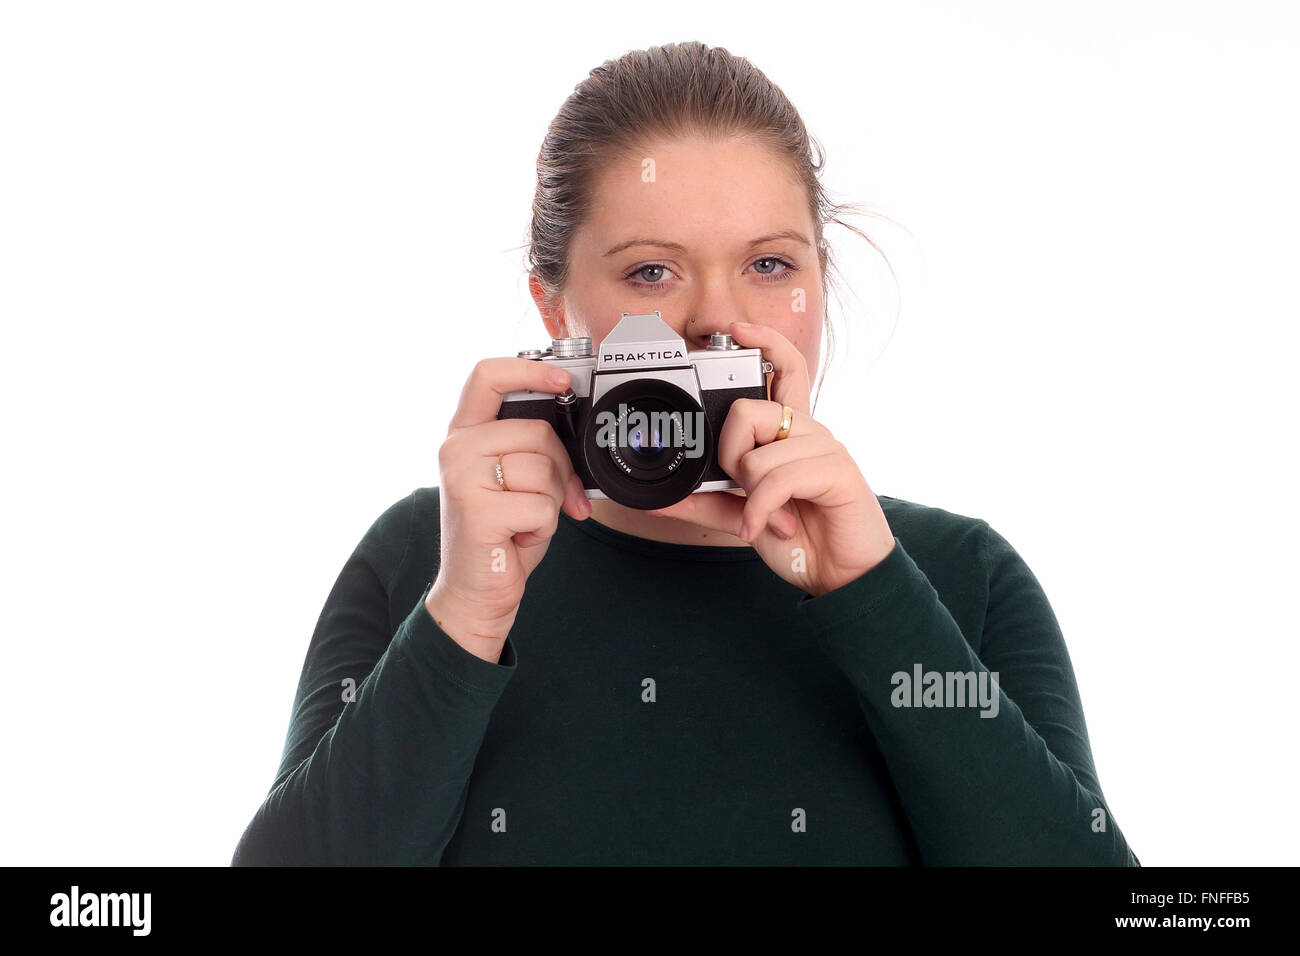 Young attractive woman holding an old East German film slr, Praktica L2. - Stock Image